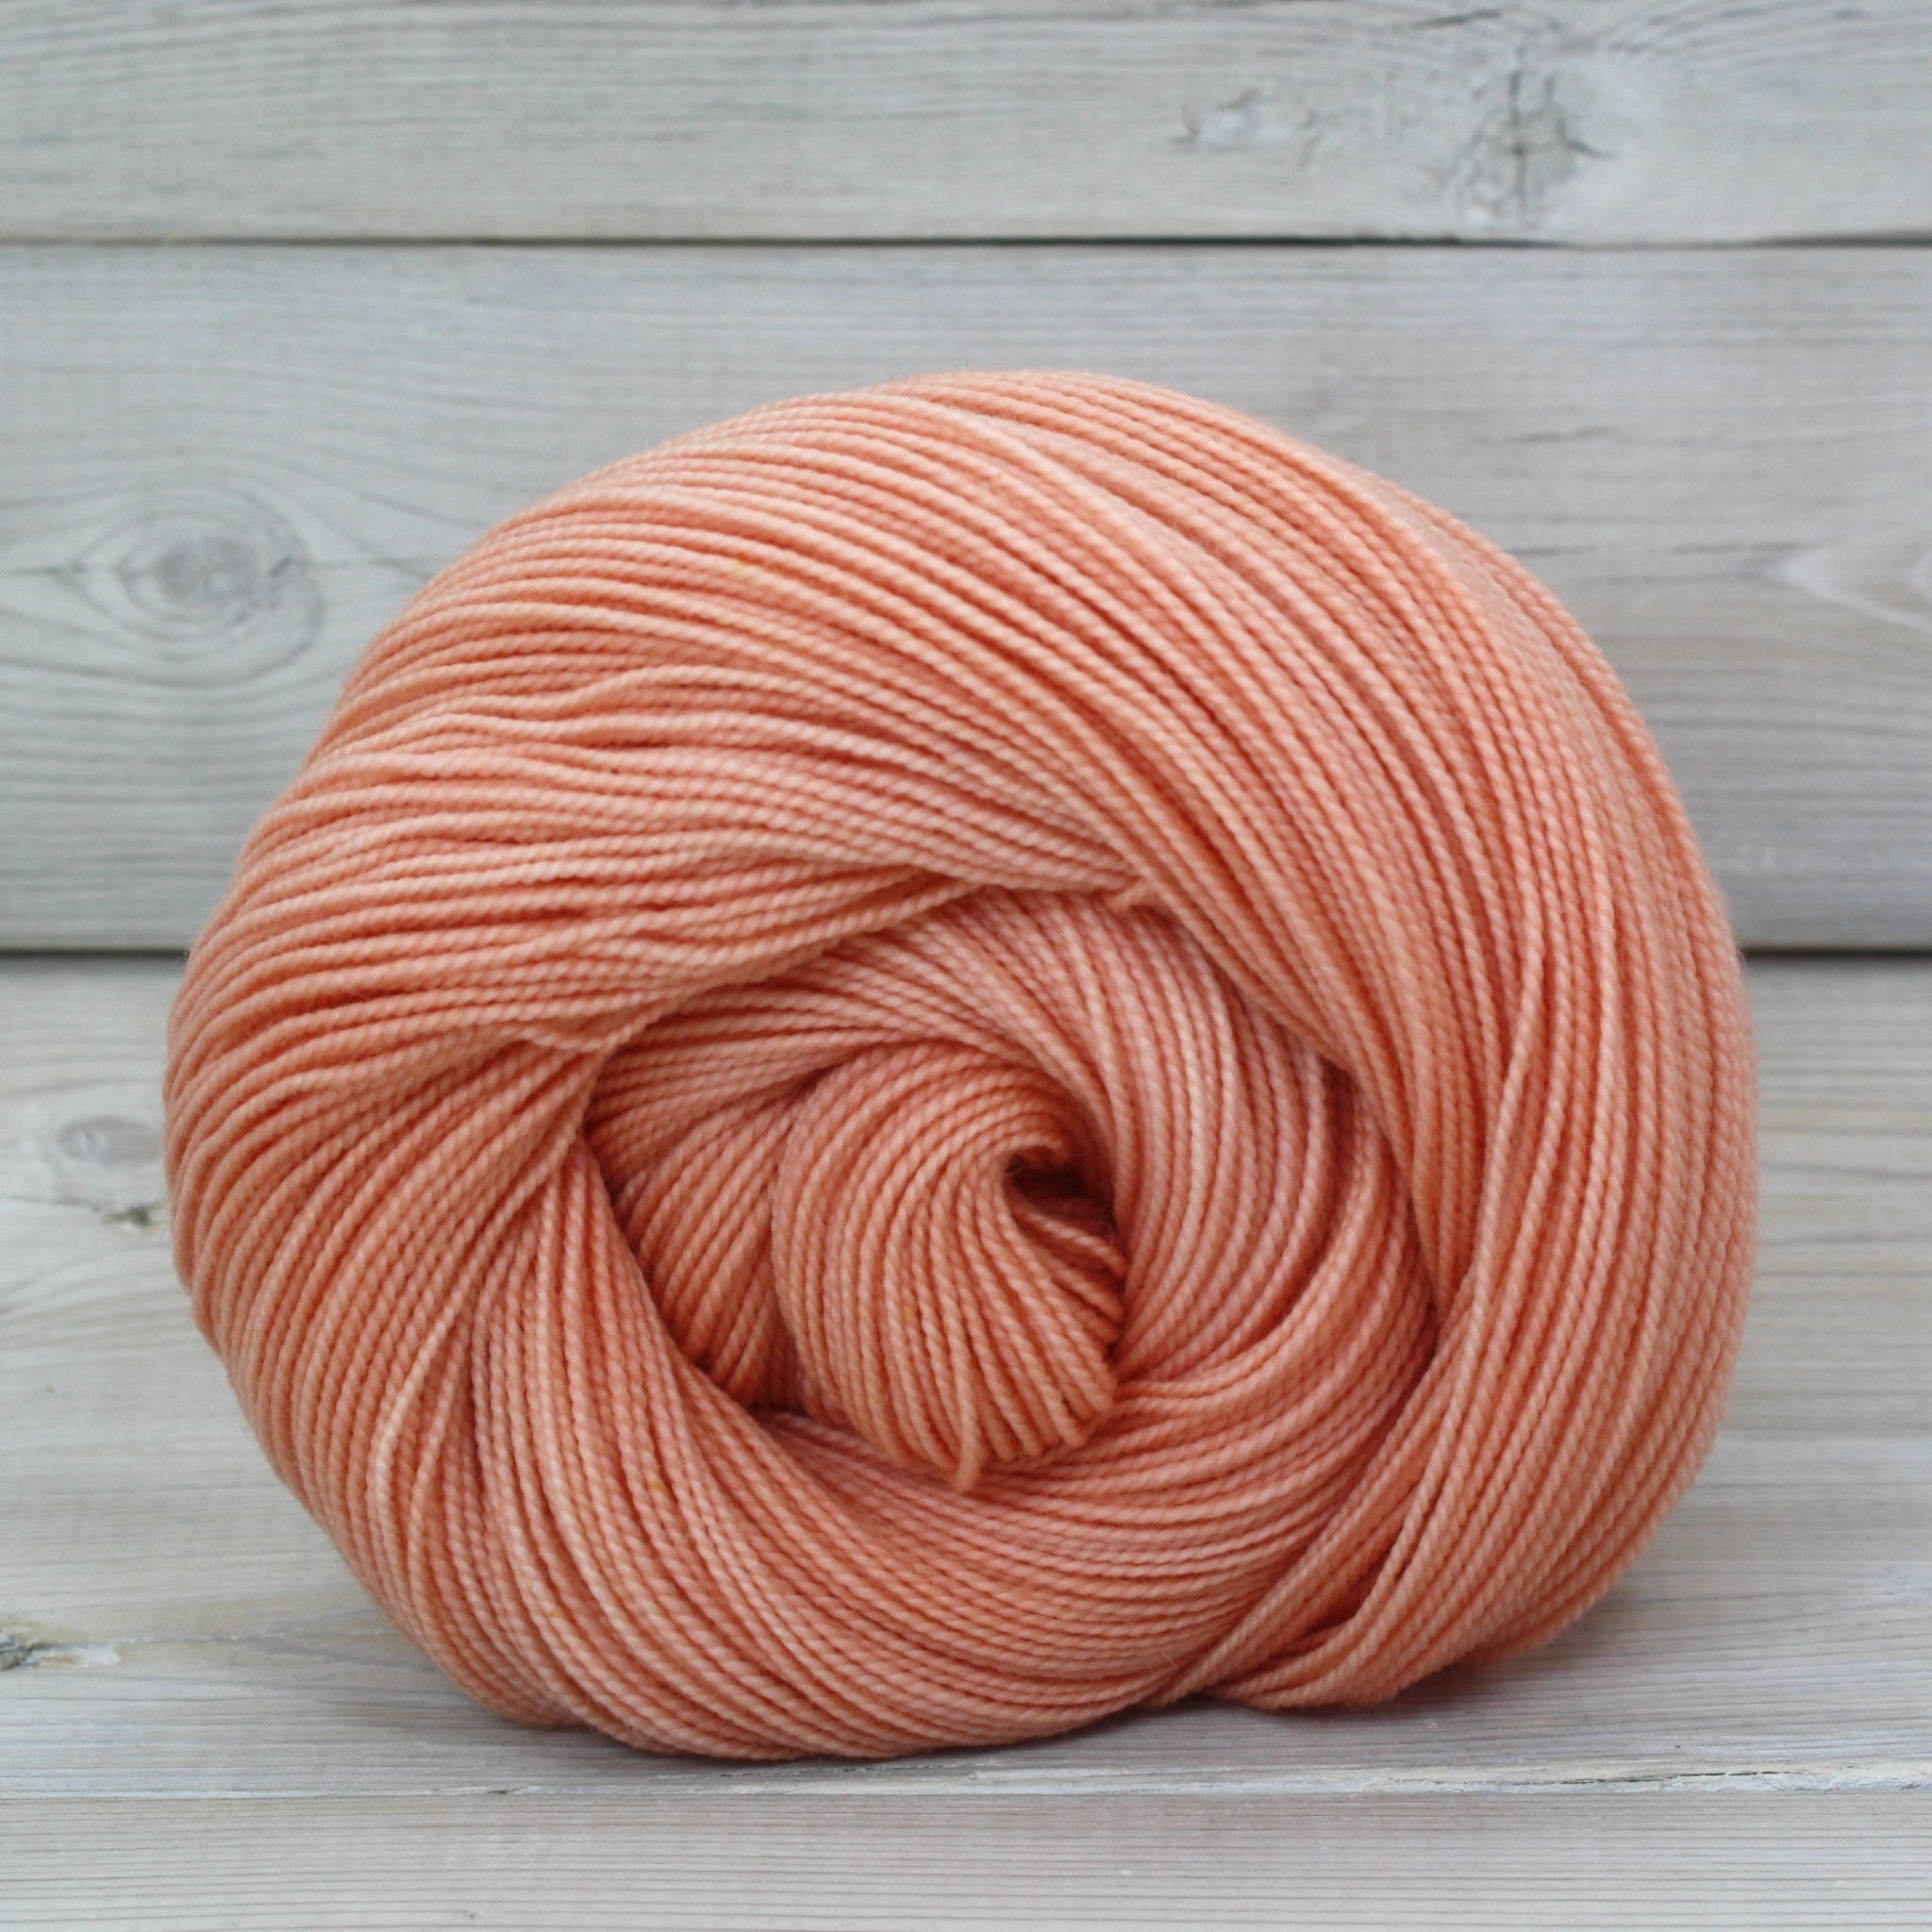 Luna Grey Fiber Arts Celeste Yarn | Colorway: Blush